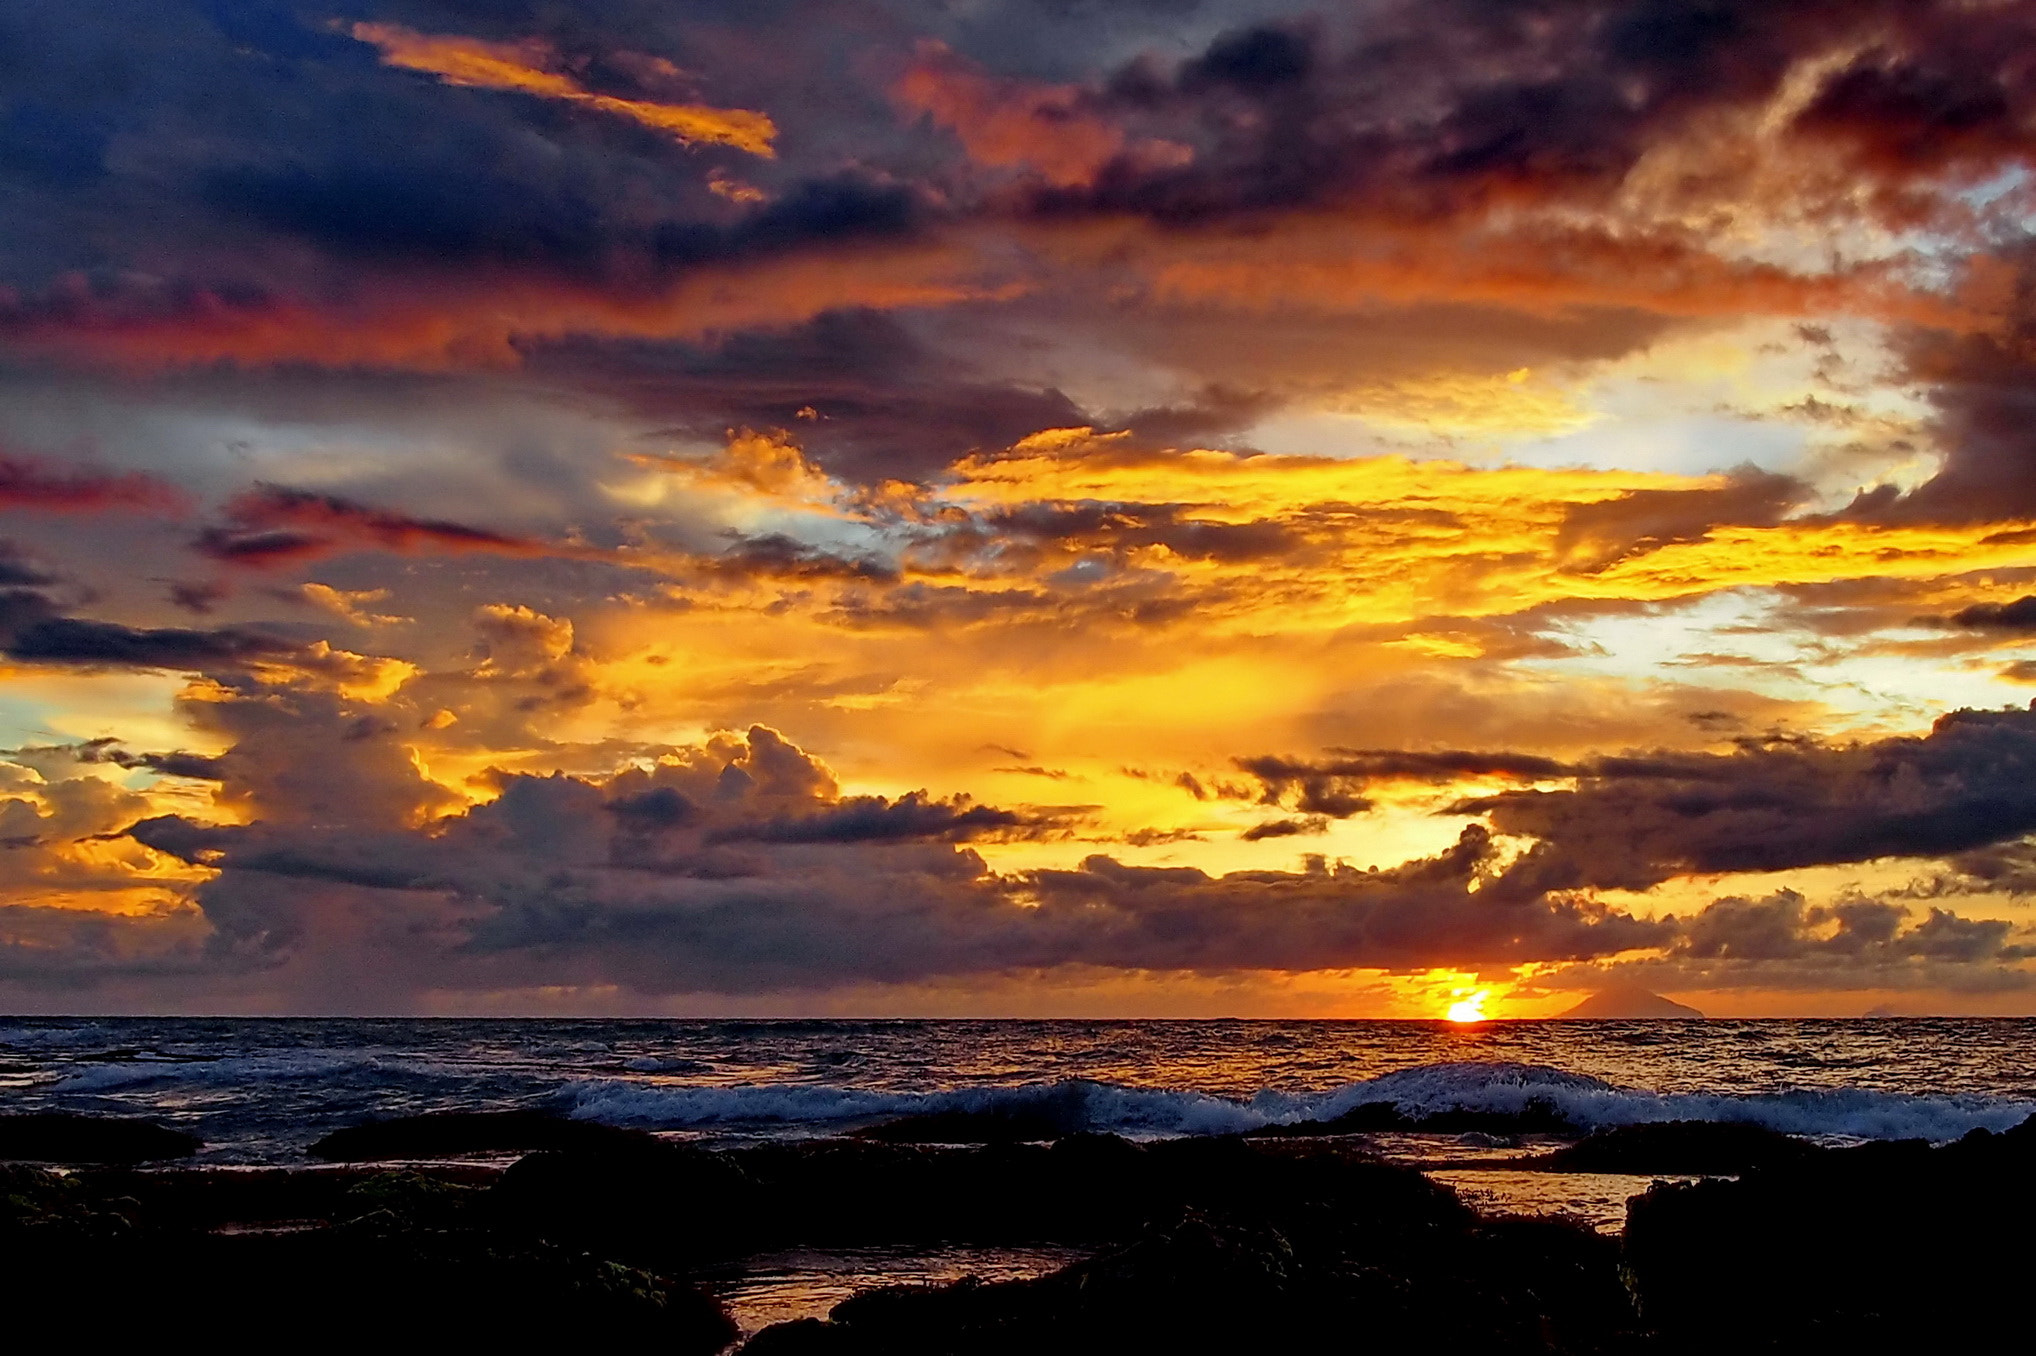 Photograph beautiful sunset @ Anyer beach by Mia Besari on 500px